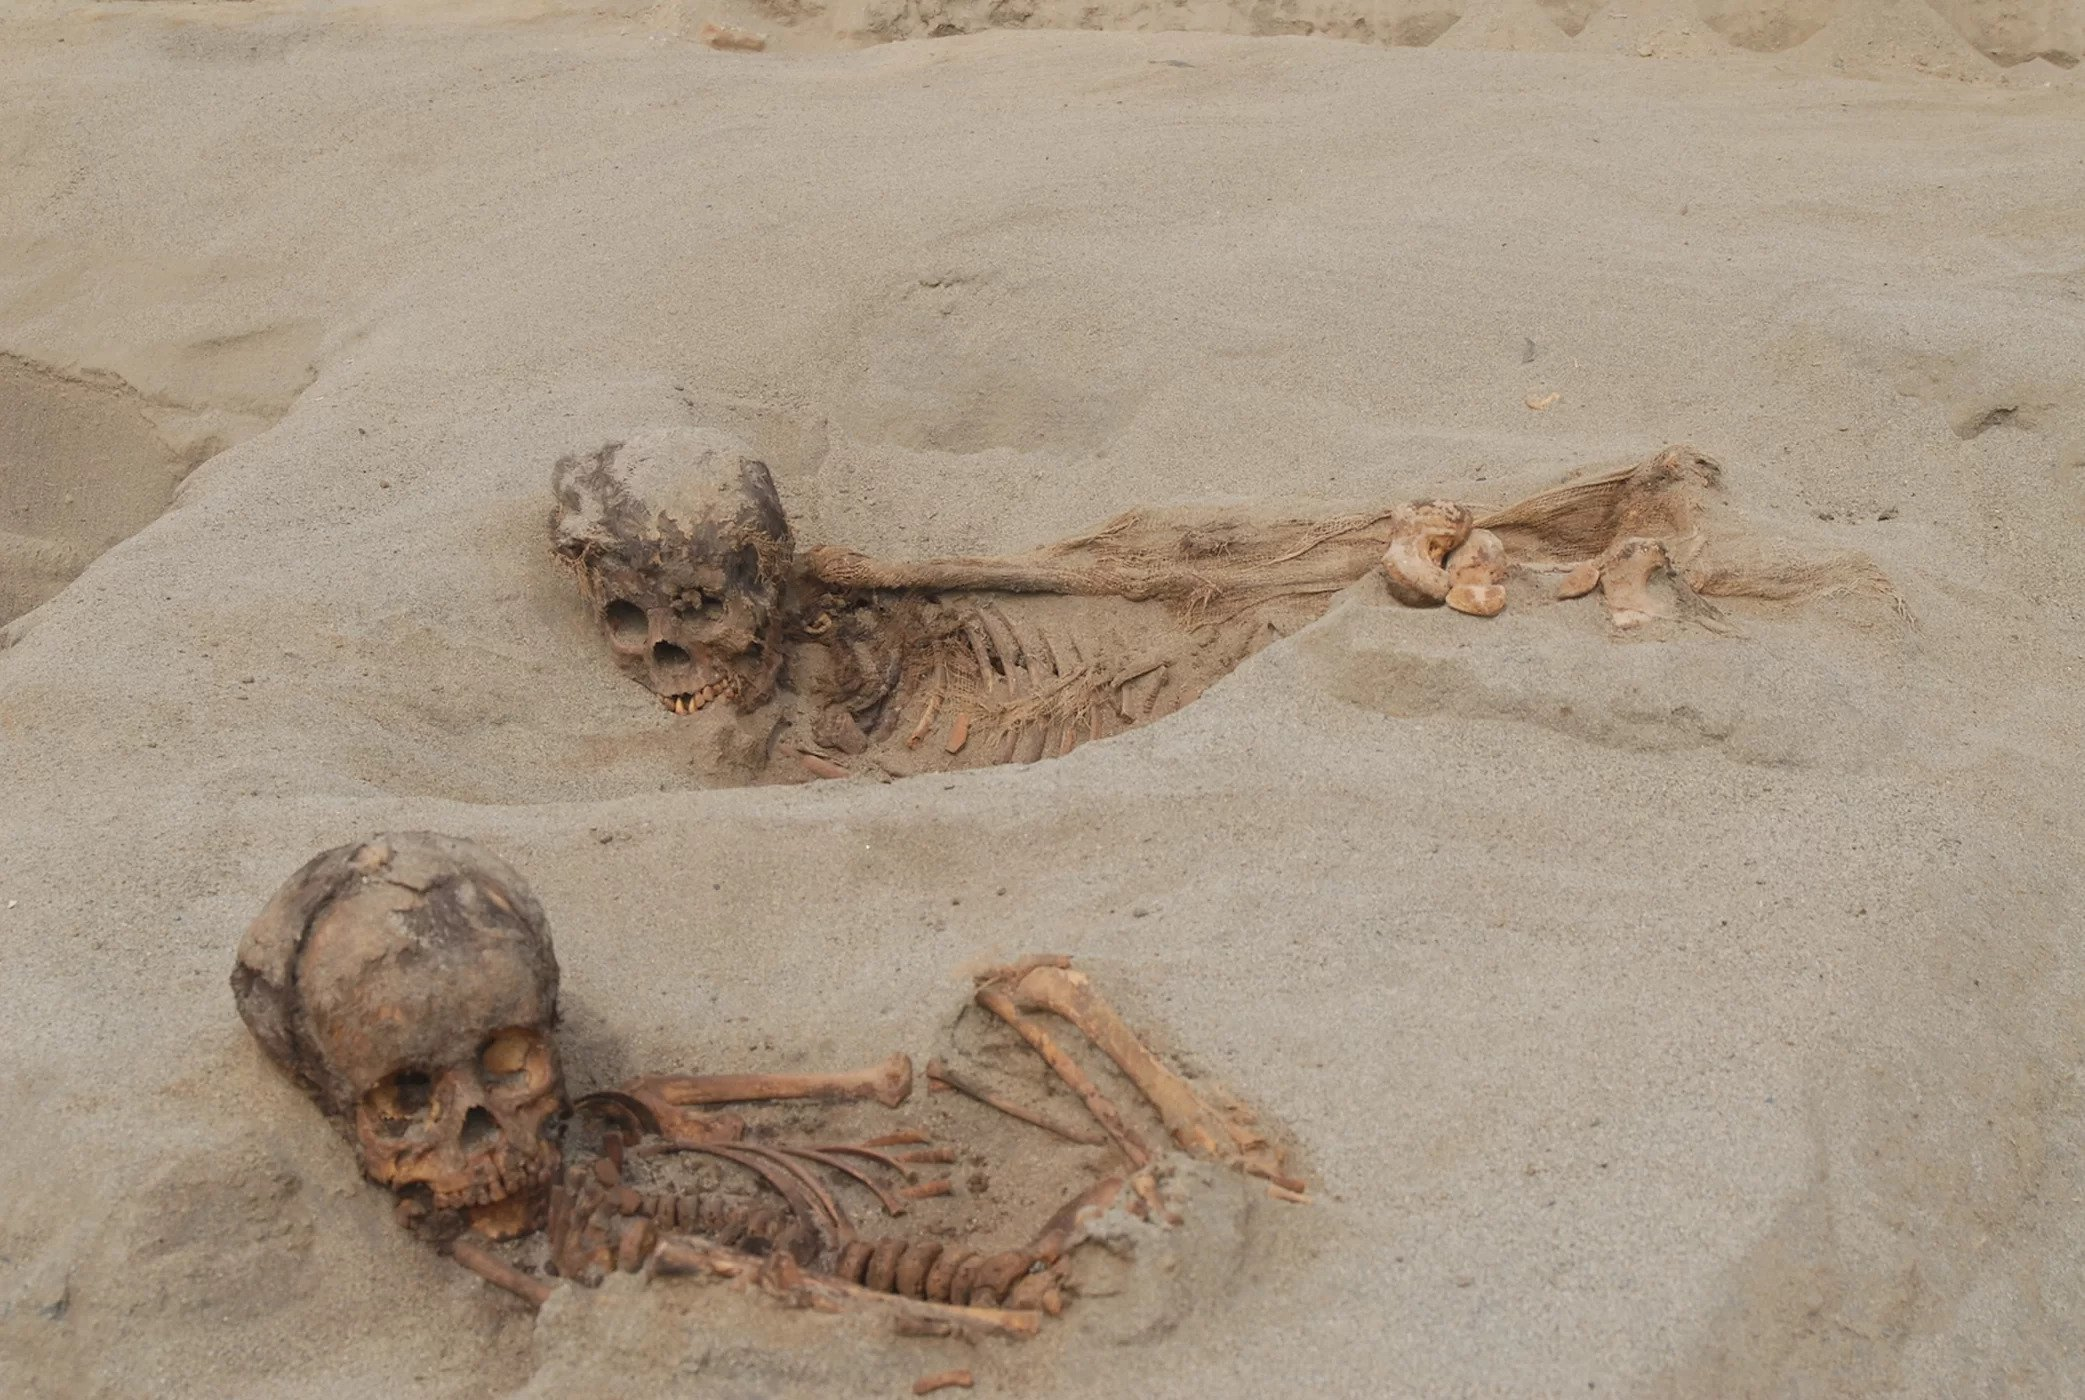 The remains of two children who were sacrificed in A.D. 1450 in what is now Peru.